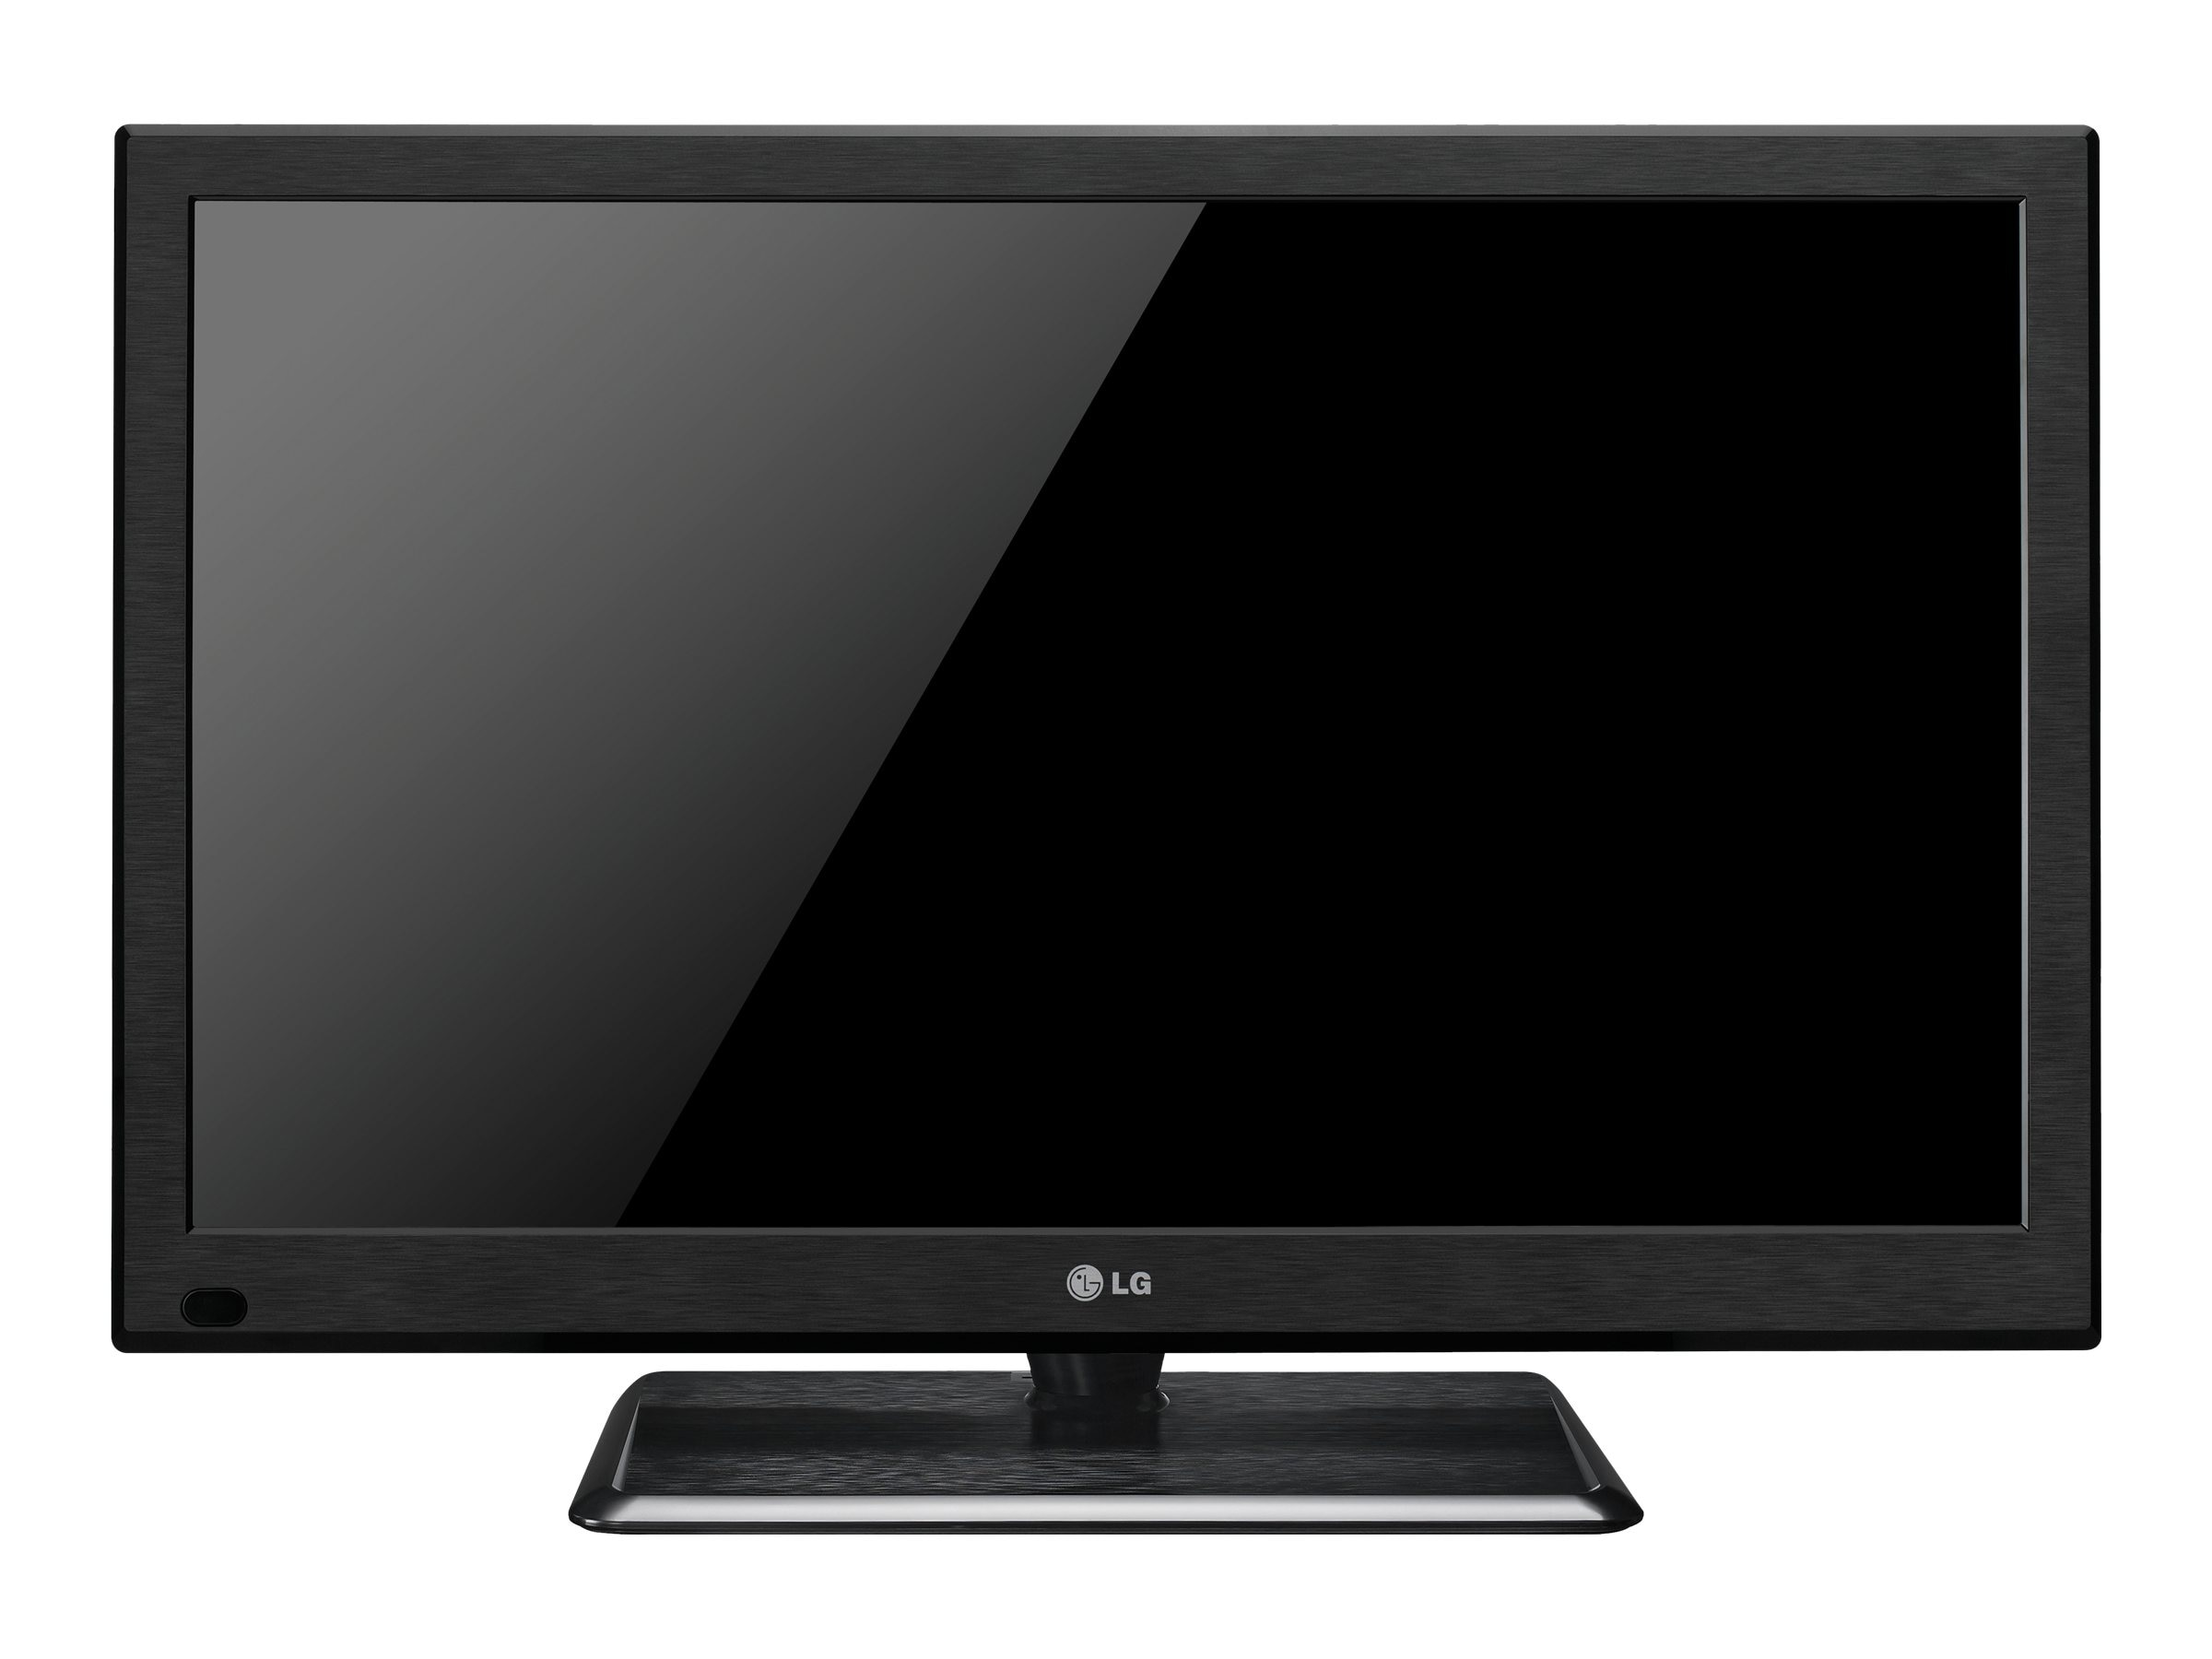 LG 32 LT777H LED-LCD Hospitality TV, Black, 32LT777H, 16526138, Televisions - LED-LCD Commercial